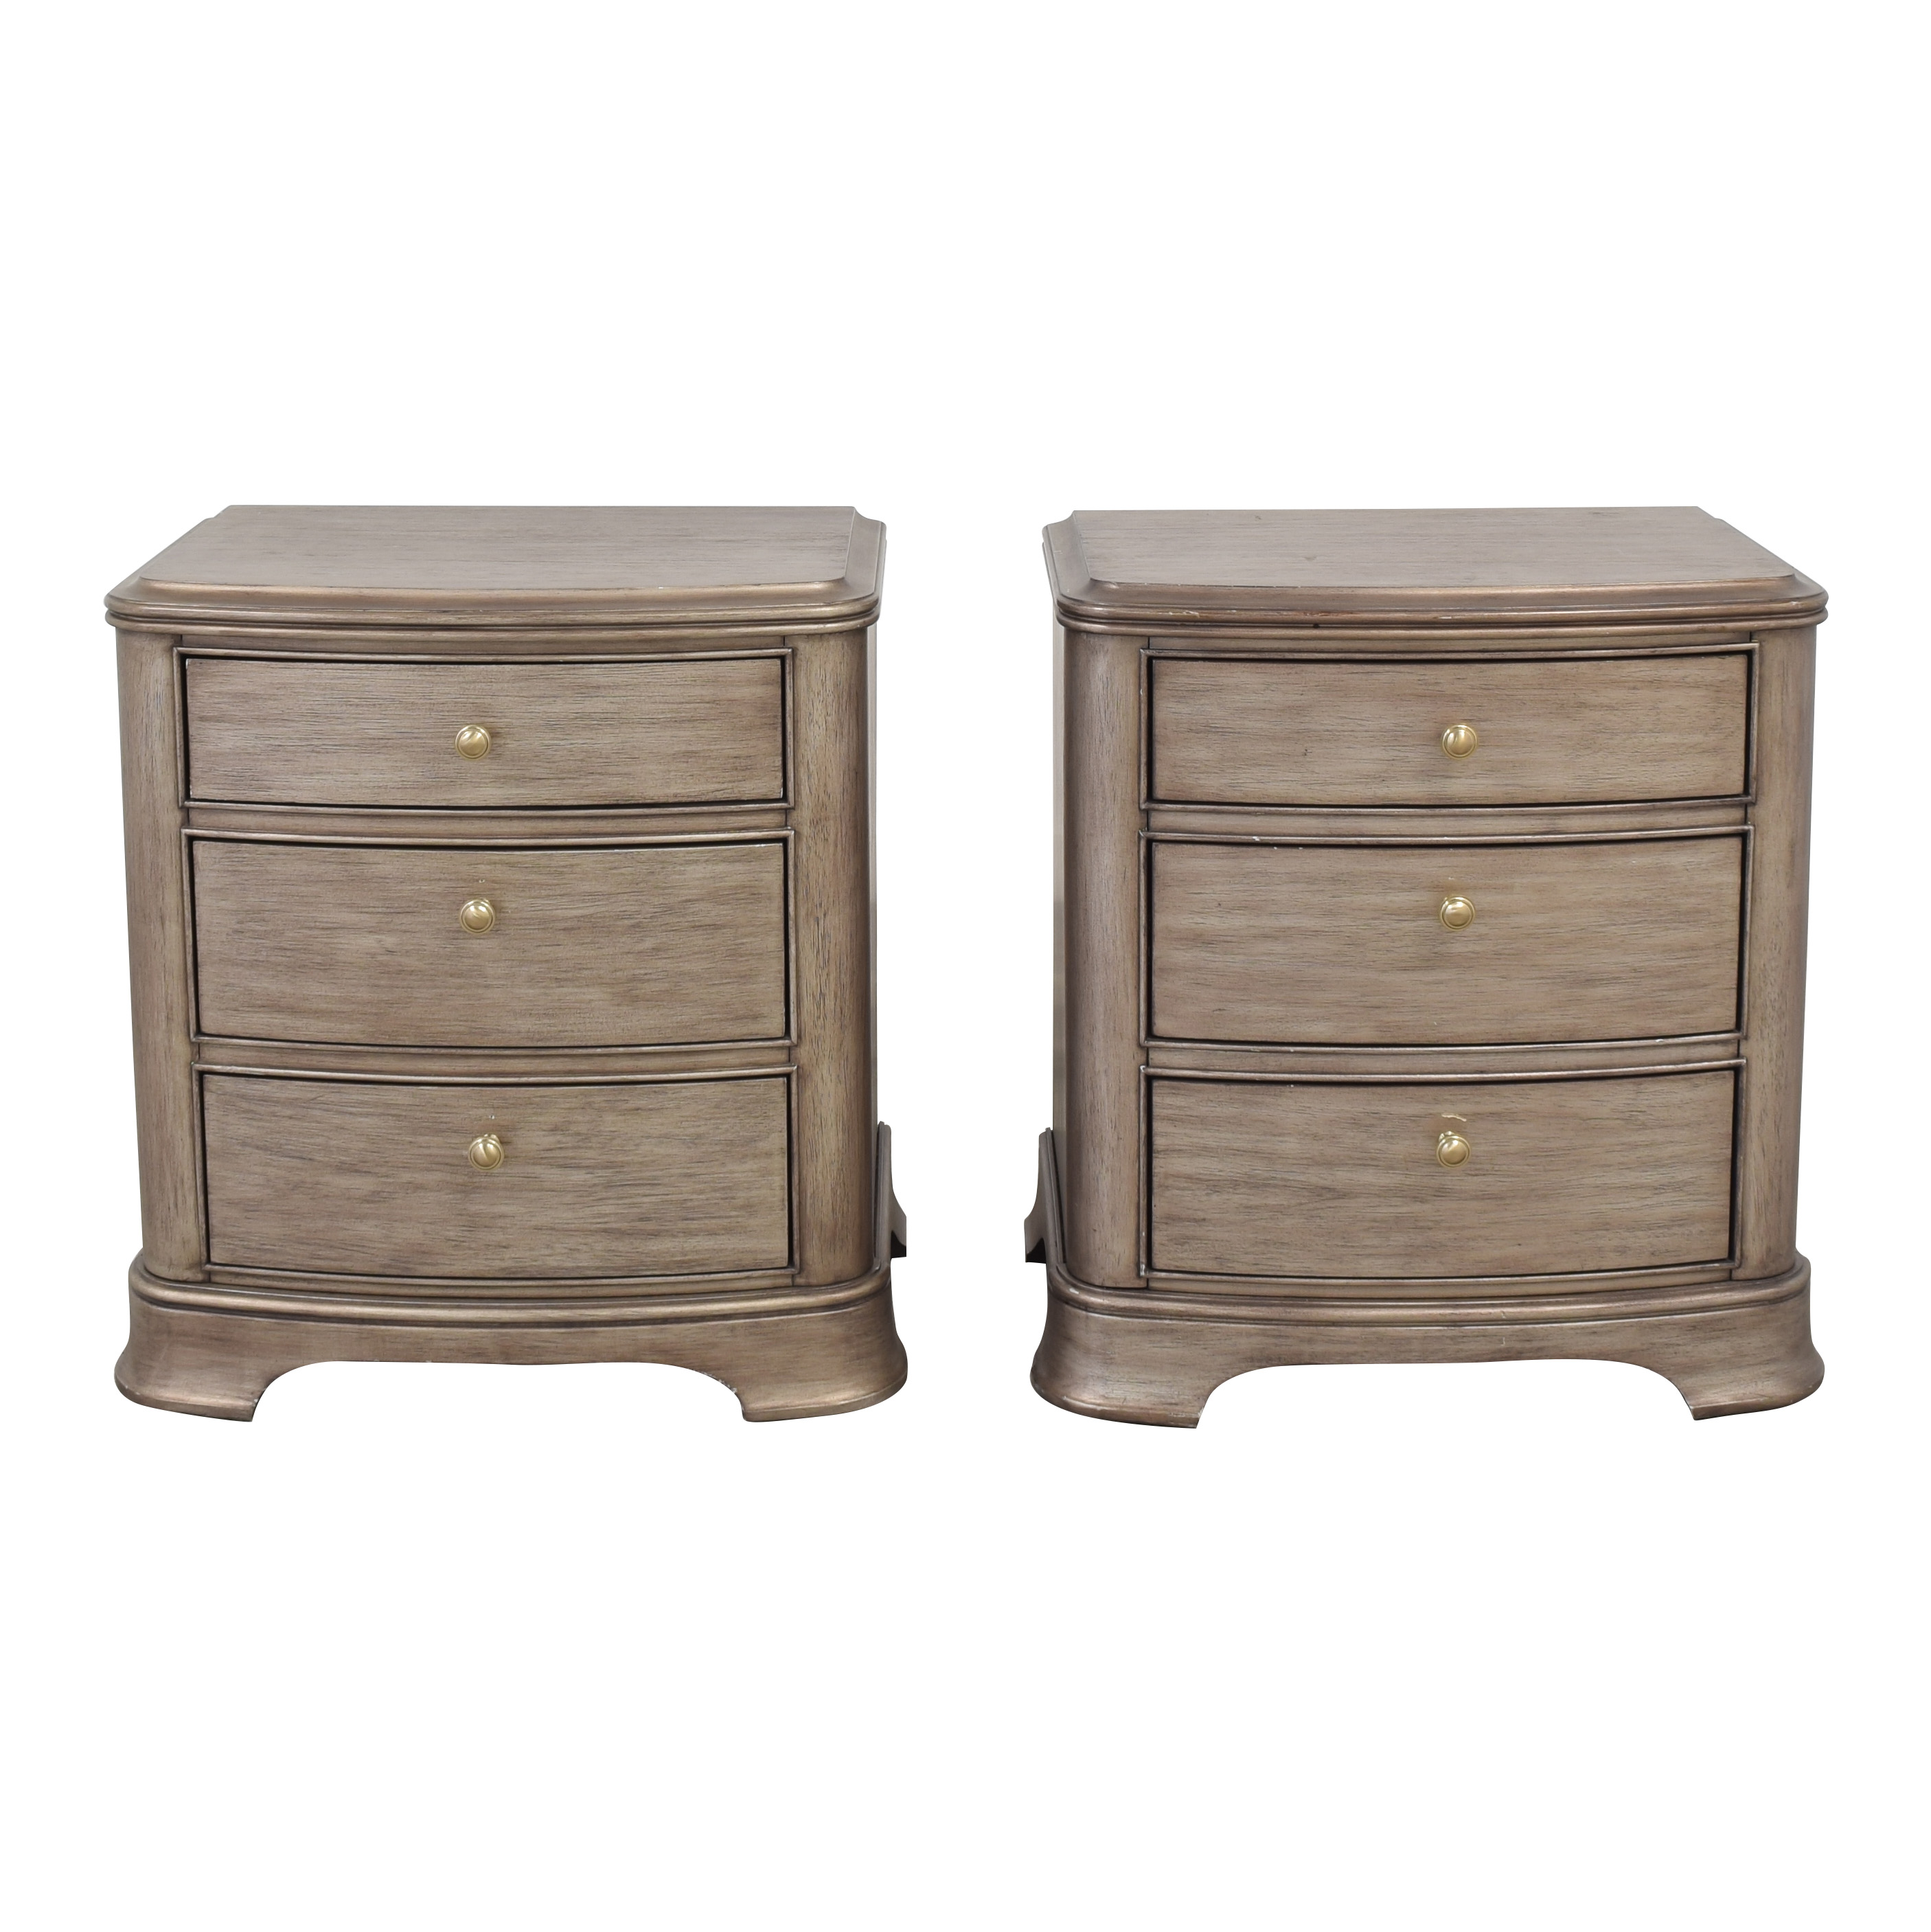 Macy's Macy's Kelly Ripa Home Three Drawer Nightstands used